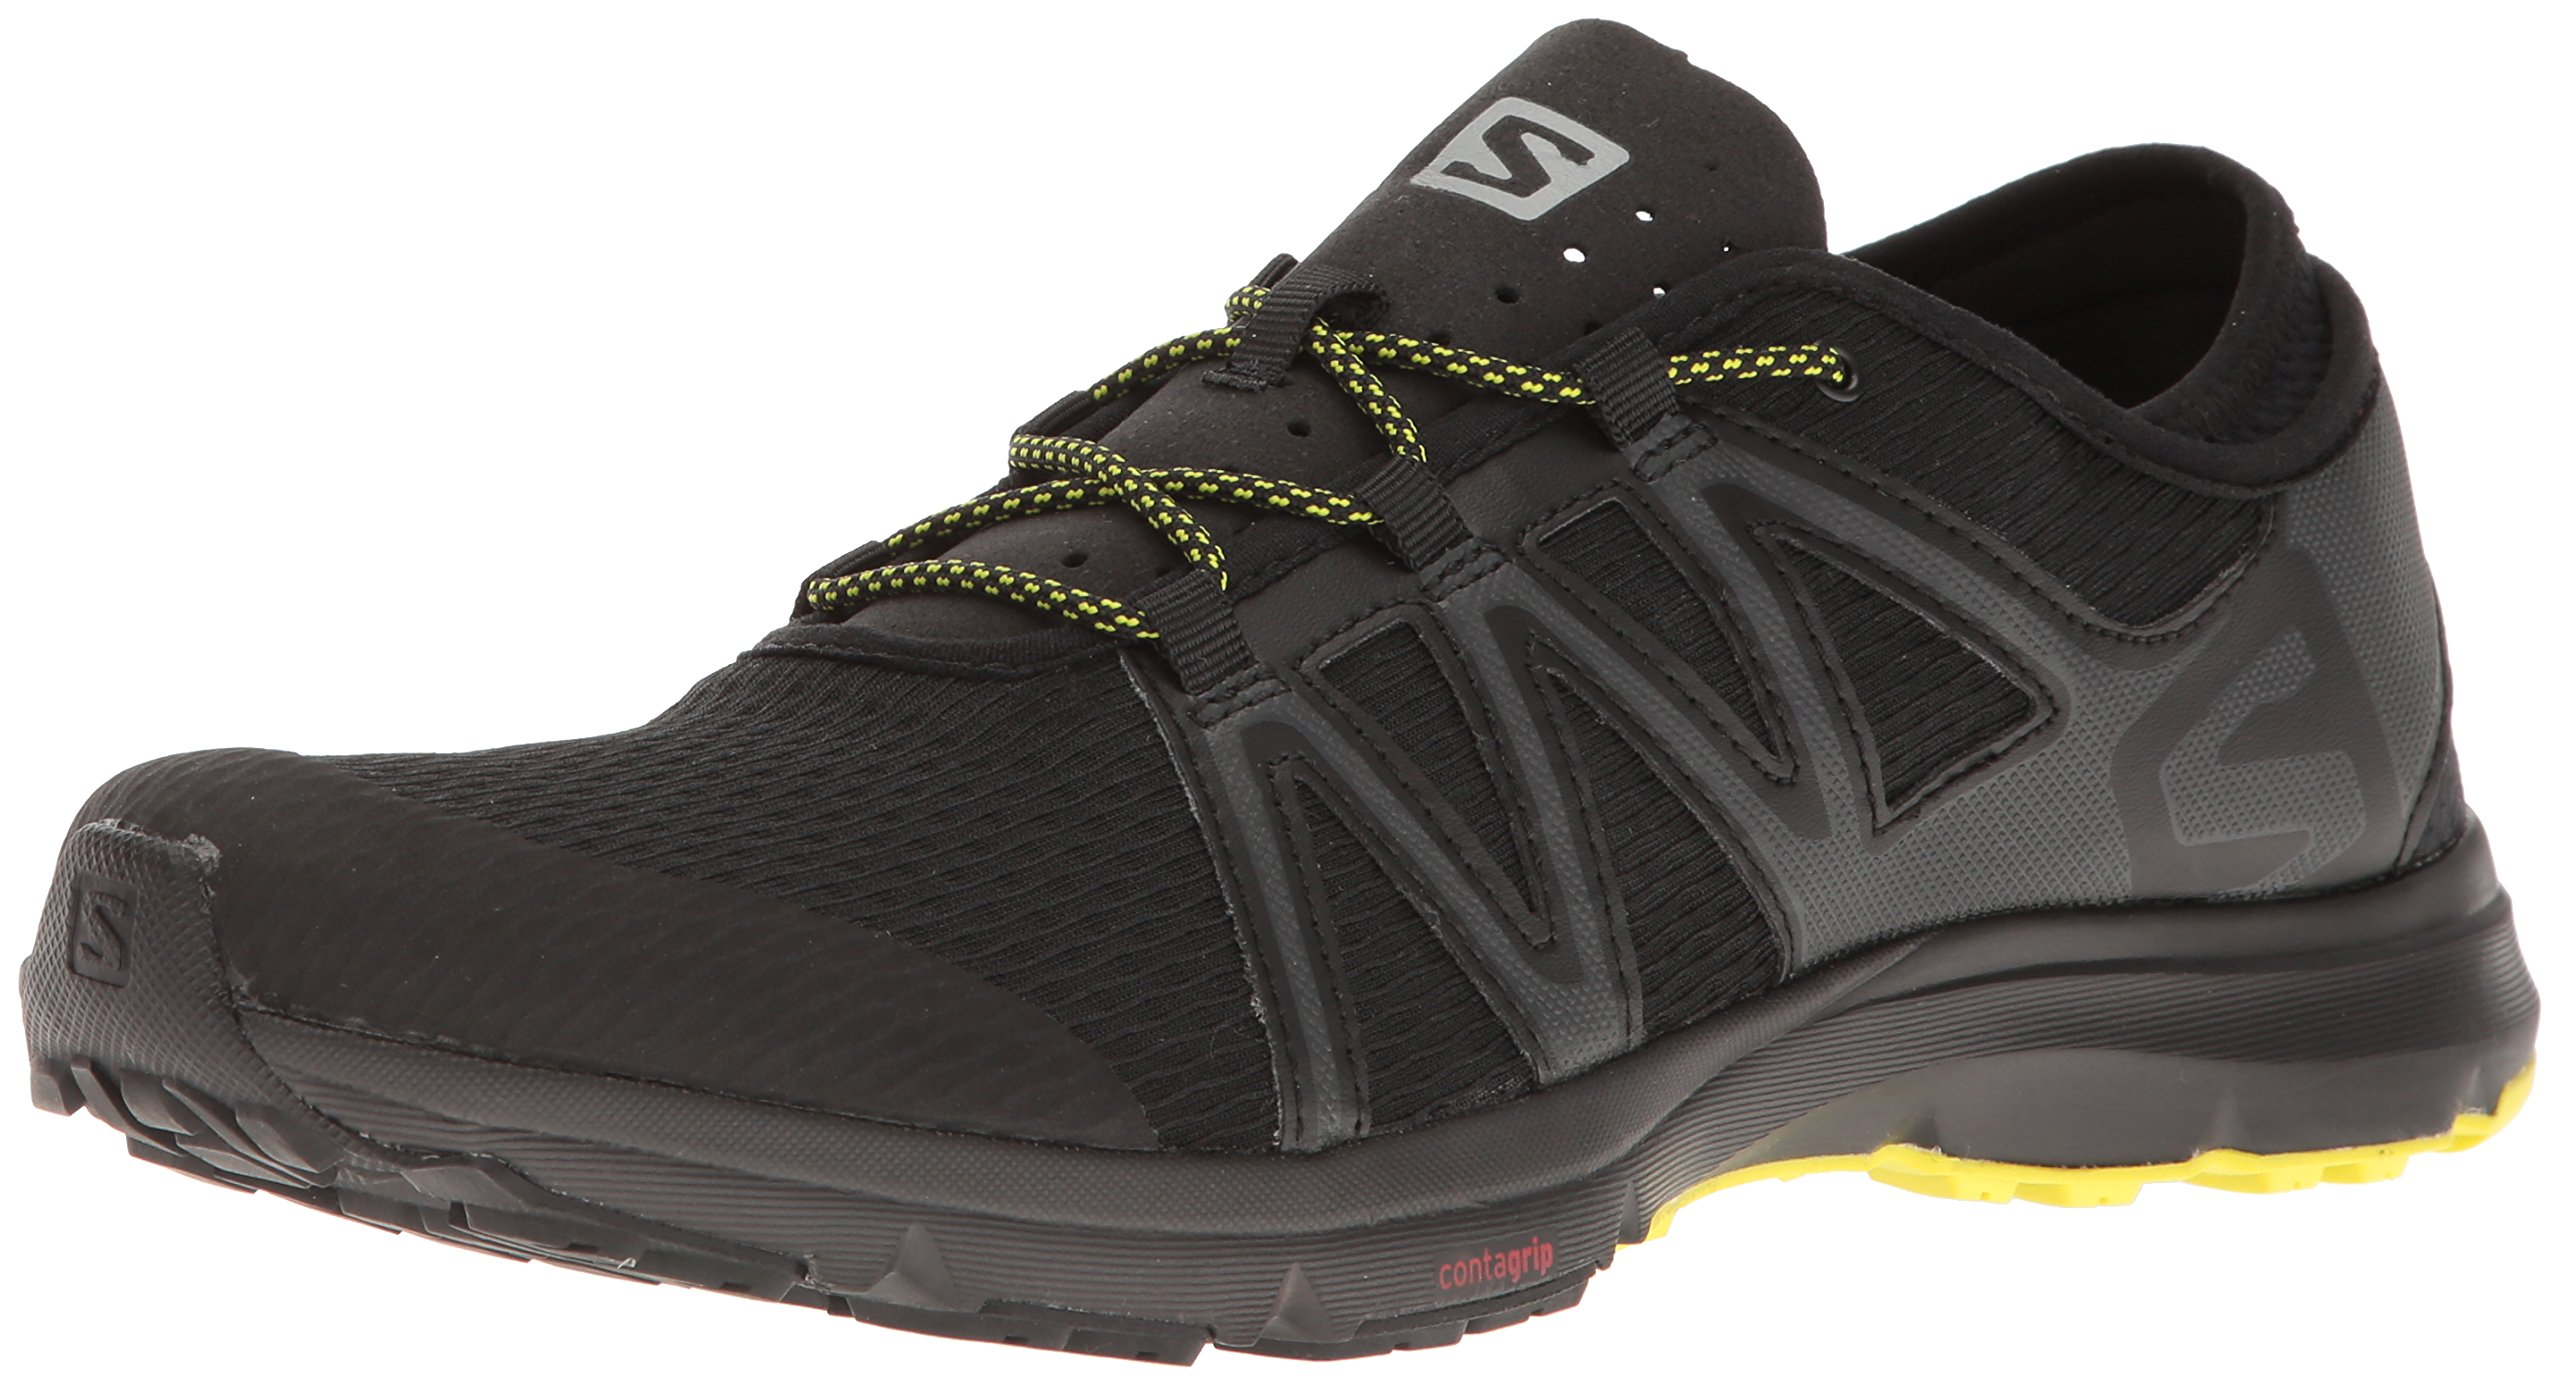 Salomon Men's Crossamphibian Swift Athletic Sandal, Black, 12 M US